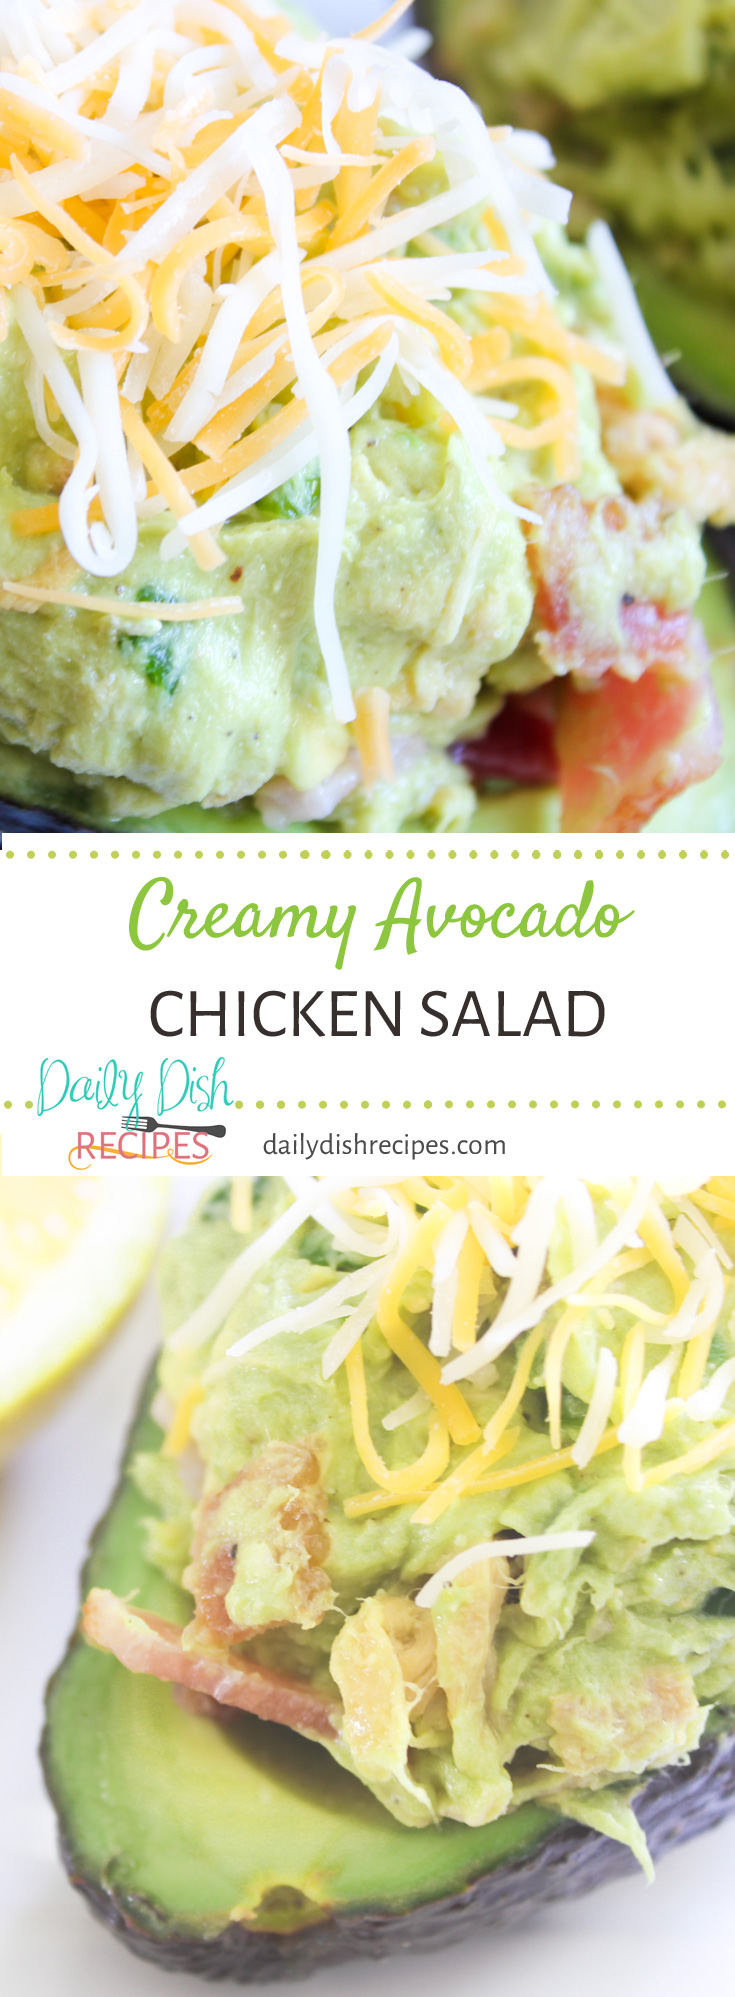 There is absolutely nothing better than this Creamy Avocado Chicken Salad. It's so delish and you can serve it right in the avocado skin.